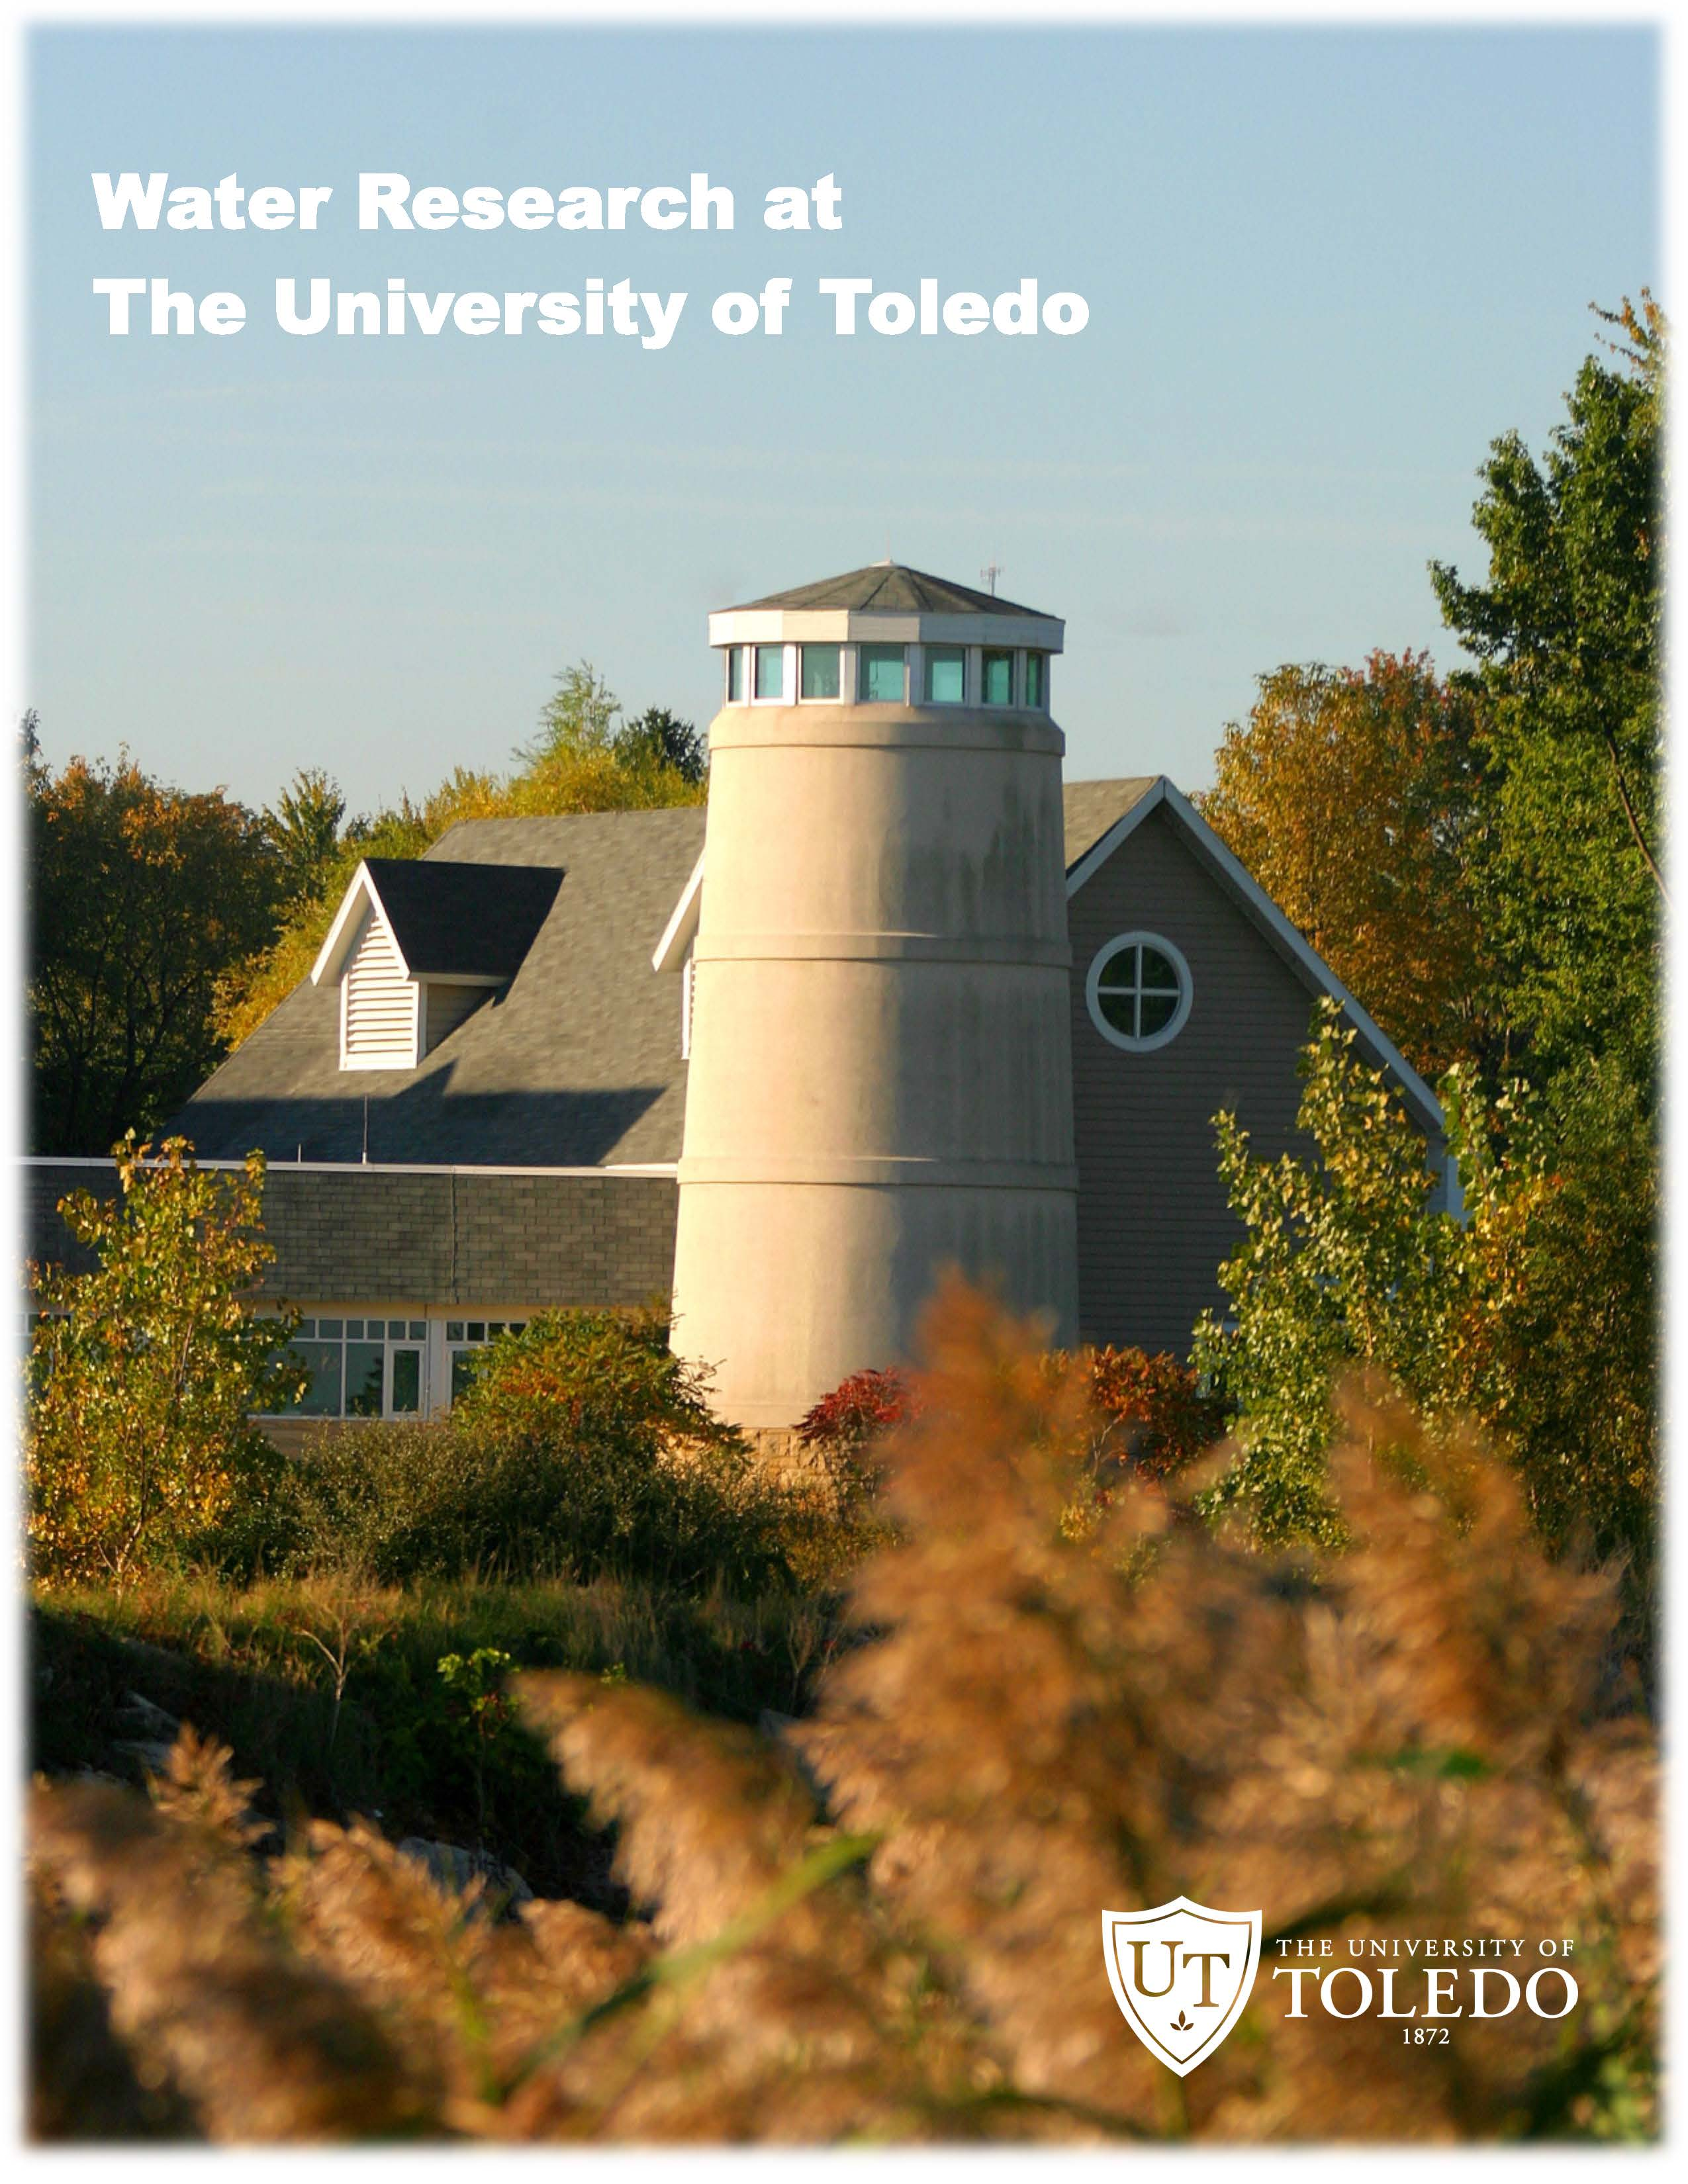 Water Research at The University of Toledo